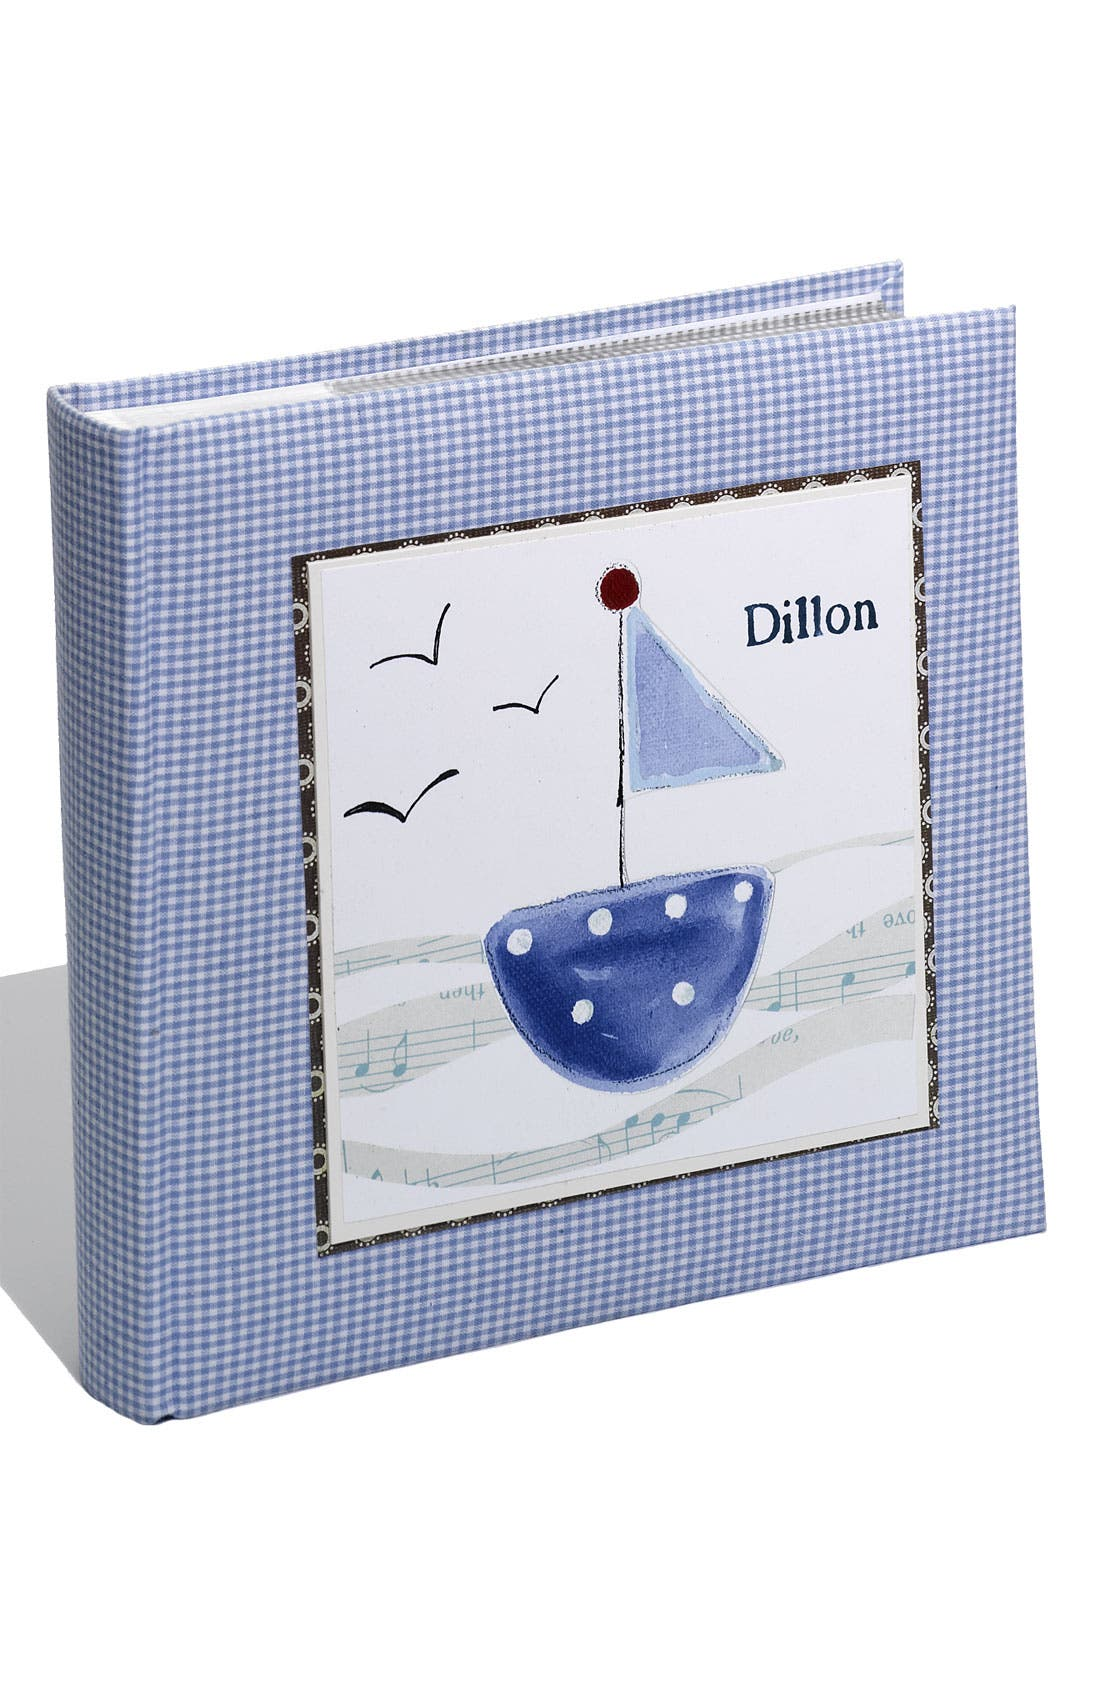 Alternate Image 1 Selected - Someday Inc. Personalized Gingham Photo Album